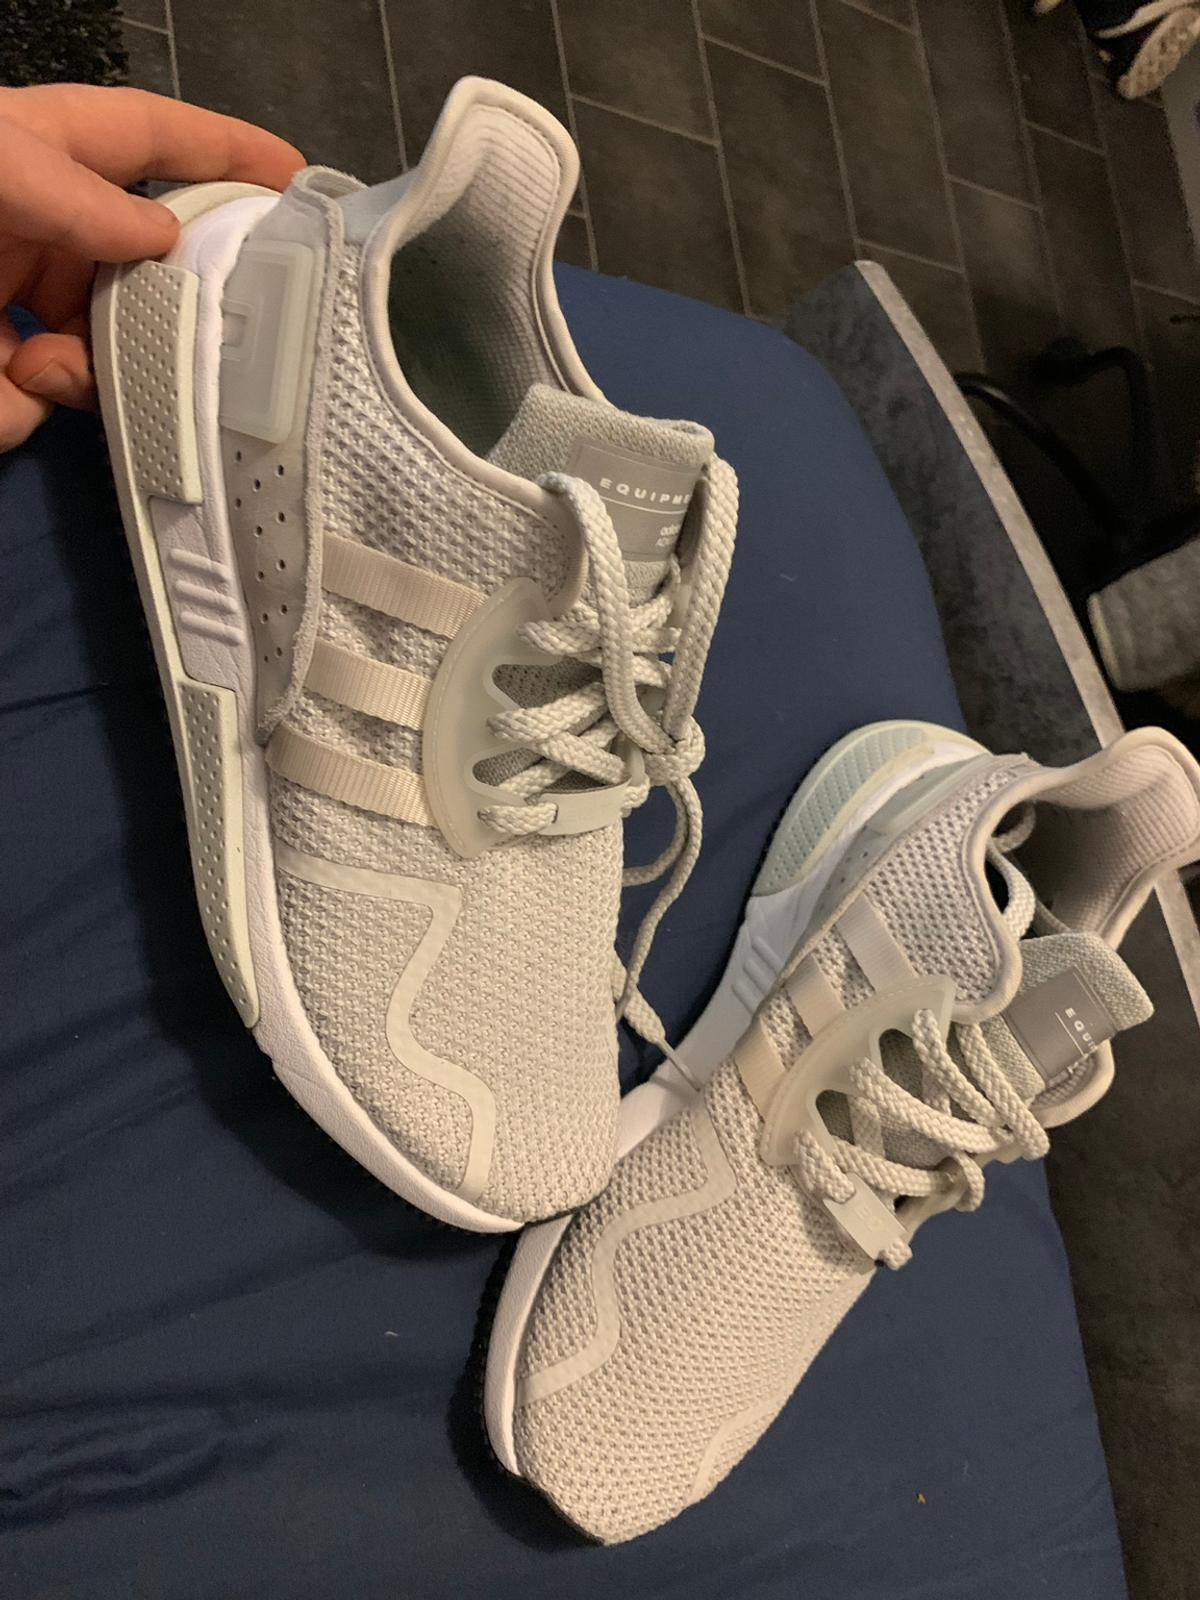 Adidas EQT neu 41,5 in 34260 Kaufungen for €55.00 for sale